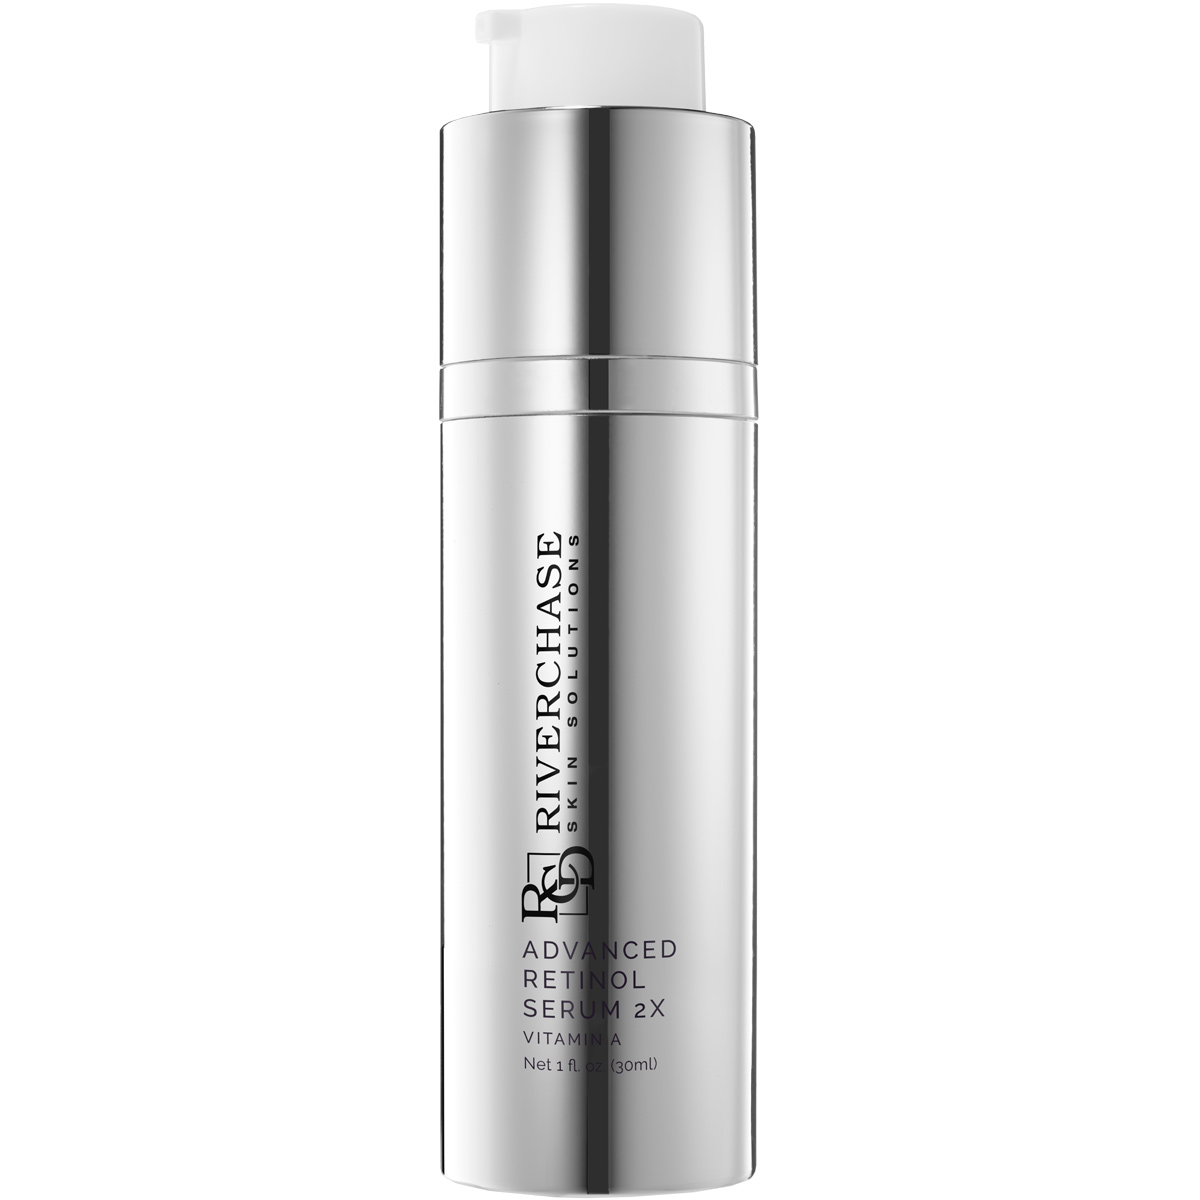 Advanced Retinol Serum 2X